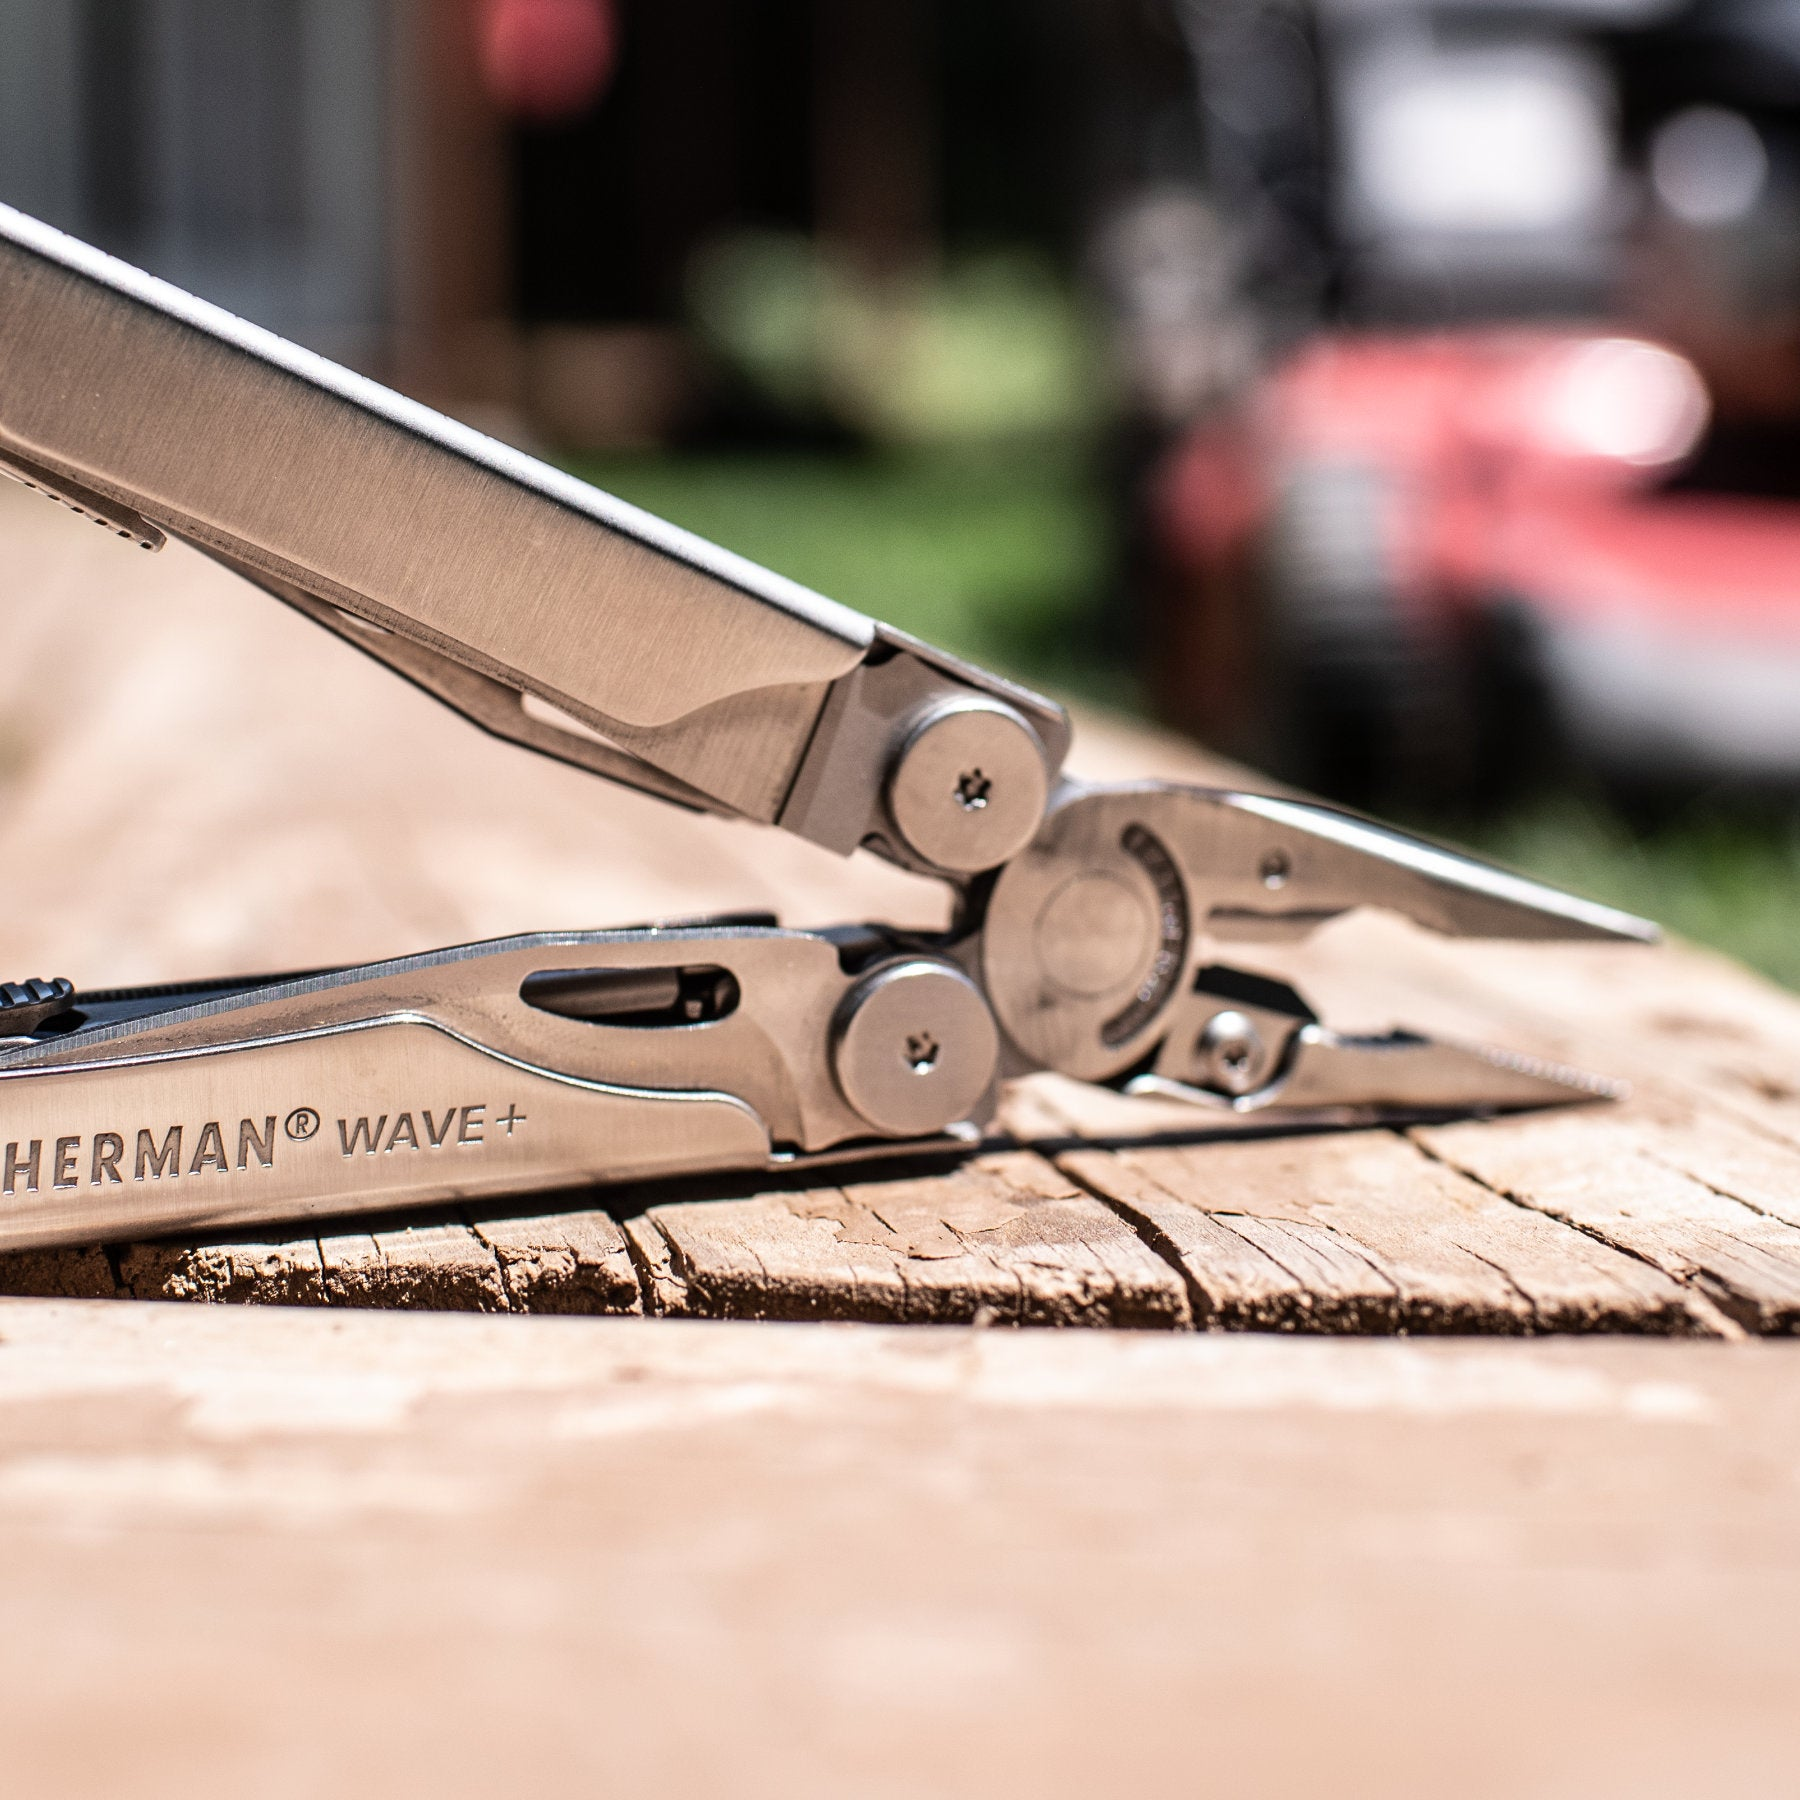 Leatherman Full-Size Tools at Swiss Knife Shop